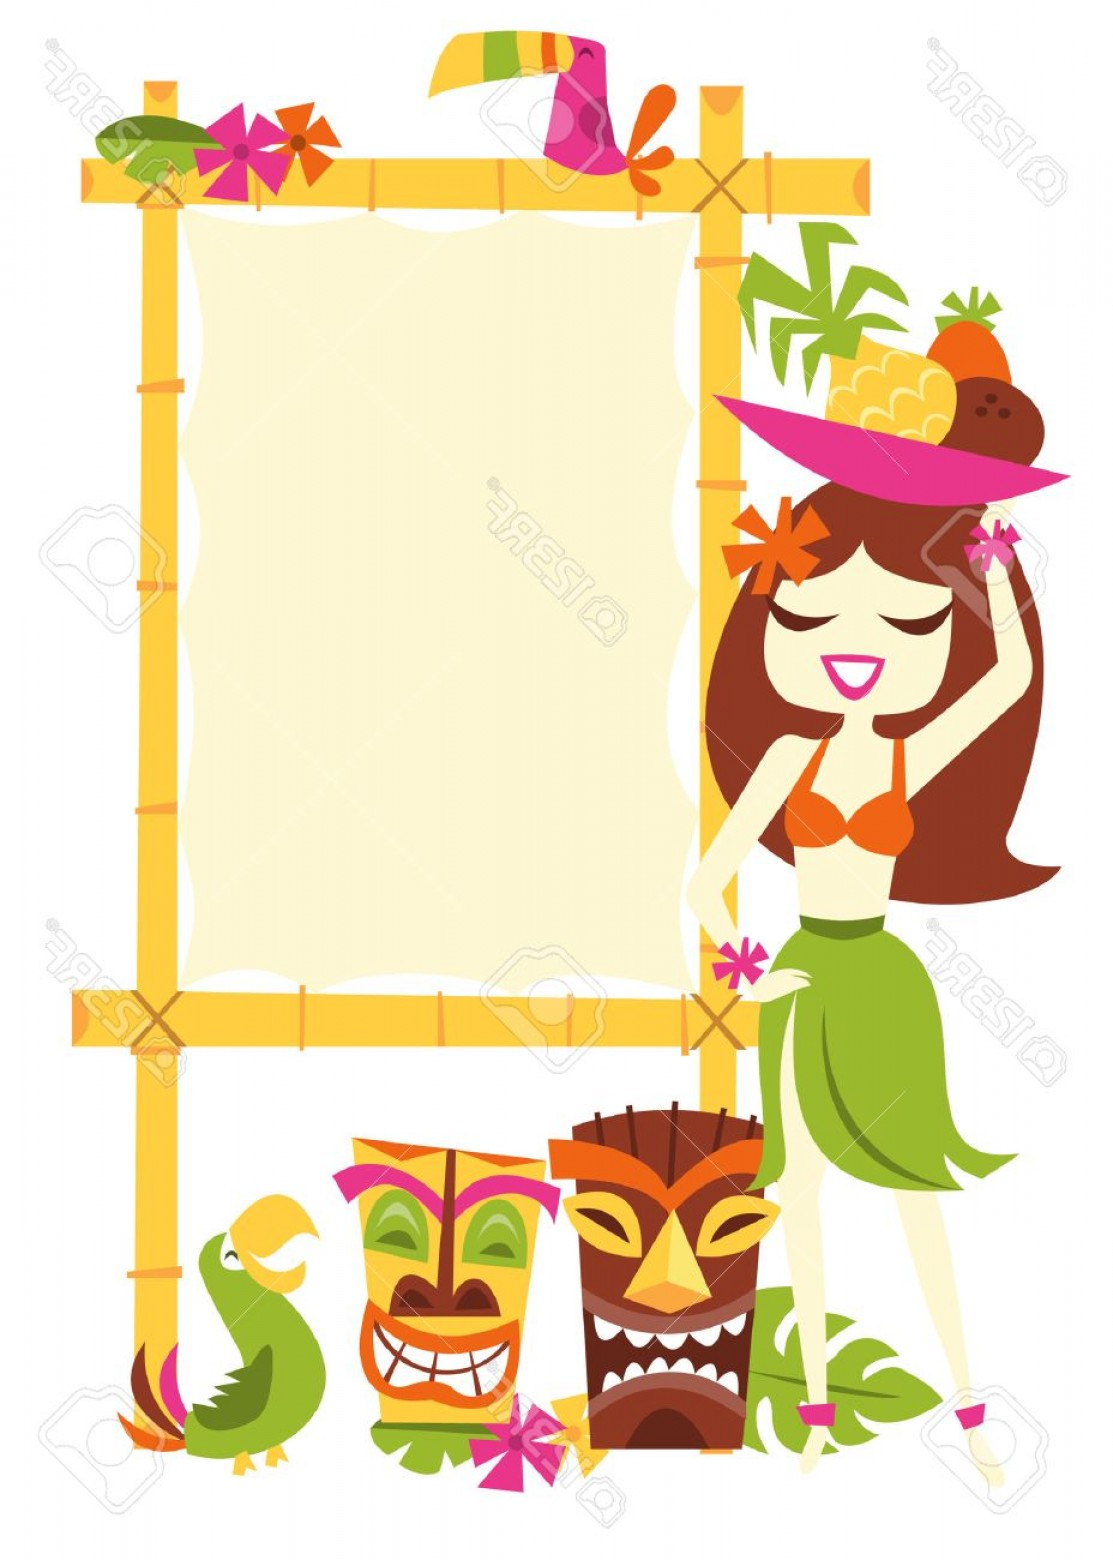 hight resolution of 1113x1560 photostock vector a vector illustration of s retro inspired cute